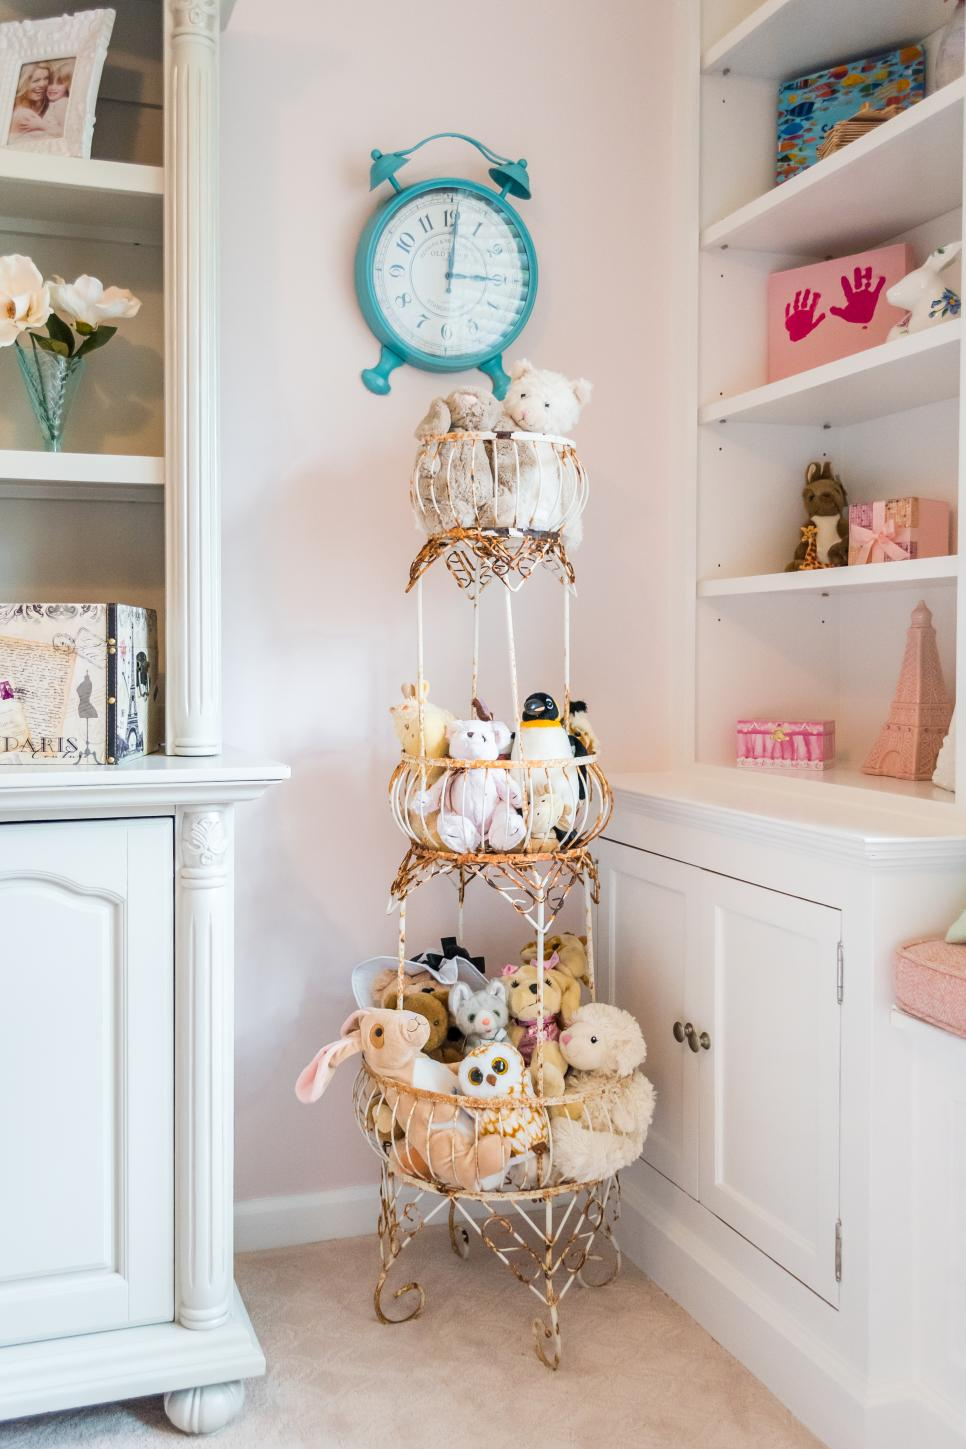 Little Girl's Room with Unique Accents